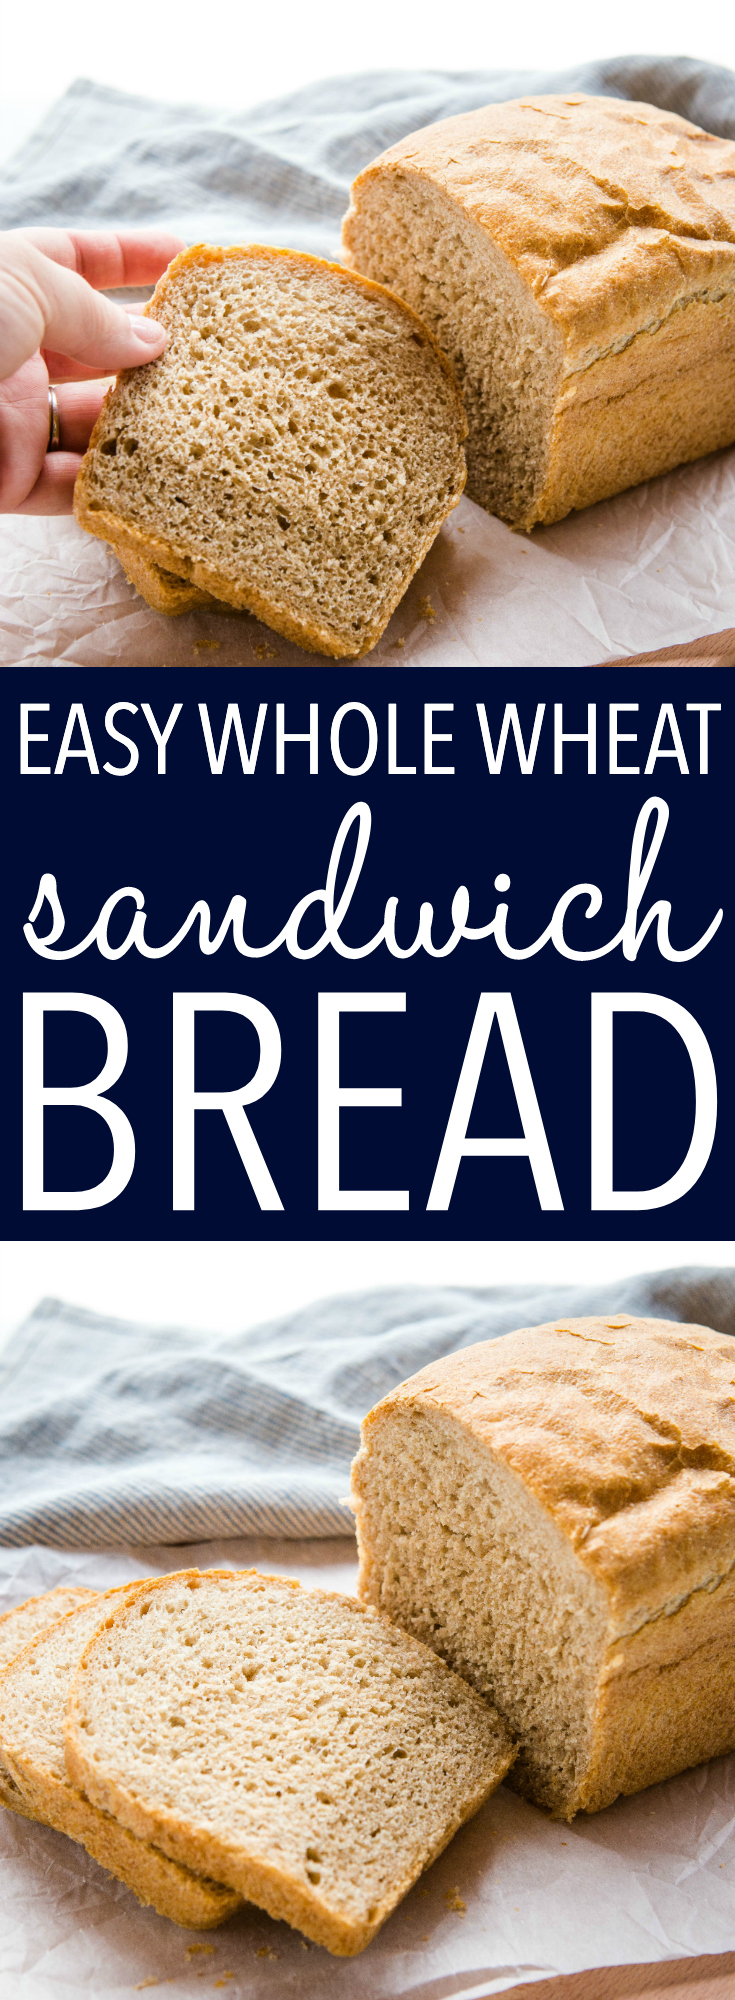 This Easy Whole Wheat Sandwich Bread is the perfect simple whole wheat bread that's delicious and hearty, and perfect for school lunches, toast for breakfast, or to serve with your favourite soups or stews! Recipe from thebusybaker.ca! #bread #homemadebread #wholewheatbread #sandwichbread #wholegrain #lunch #schoollunch #healthy #homemade #homesteading via @busybakerblog